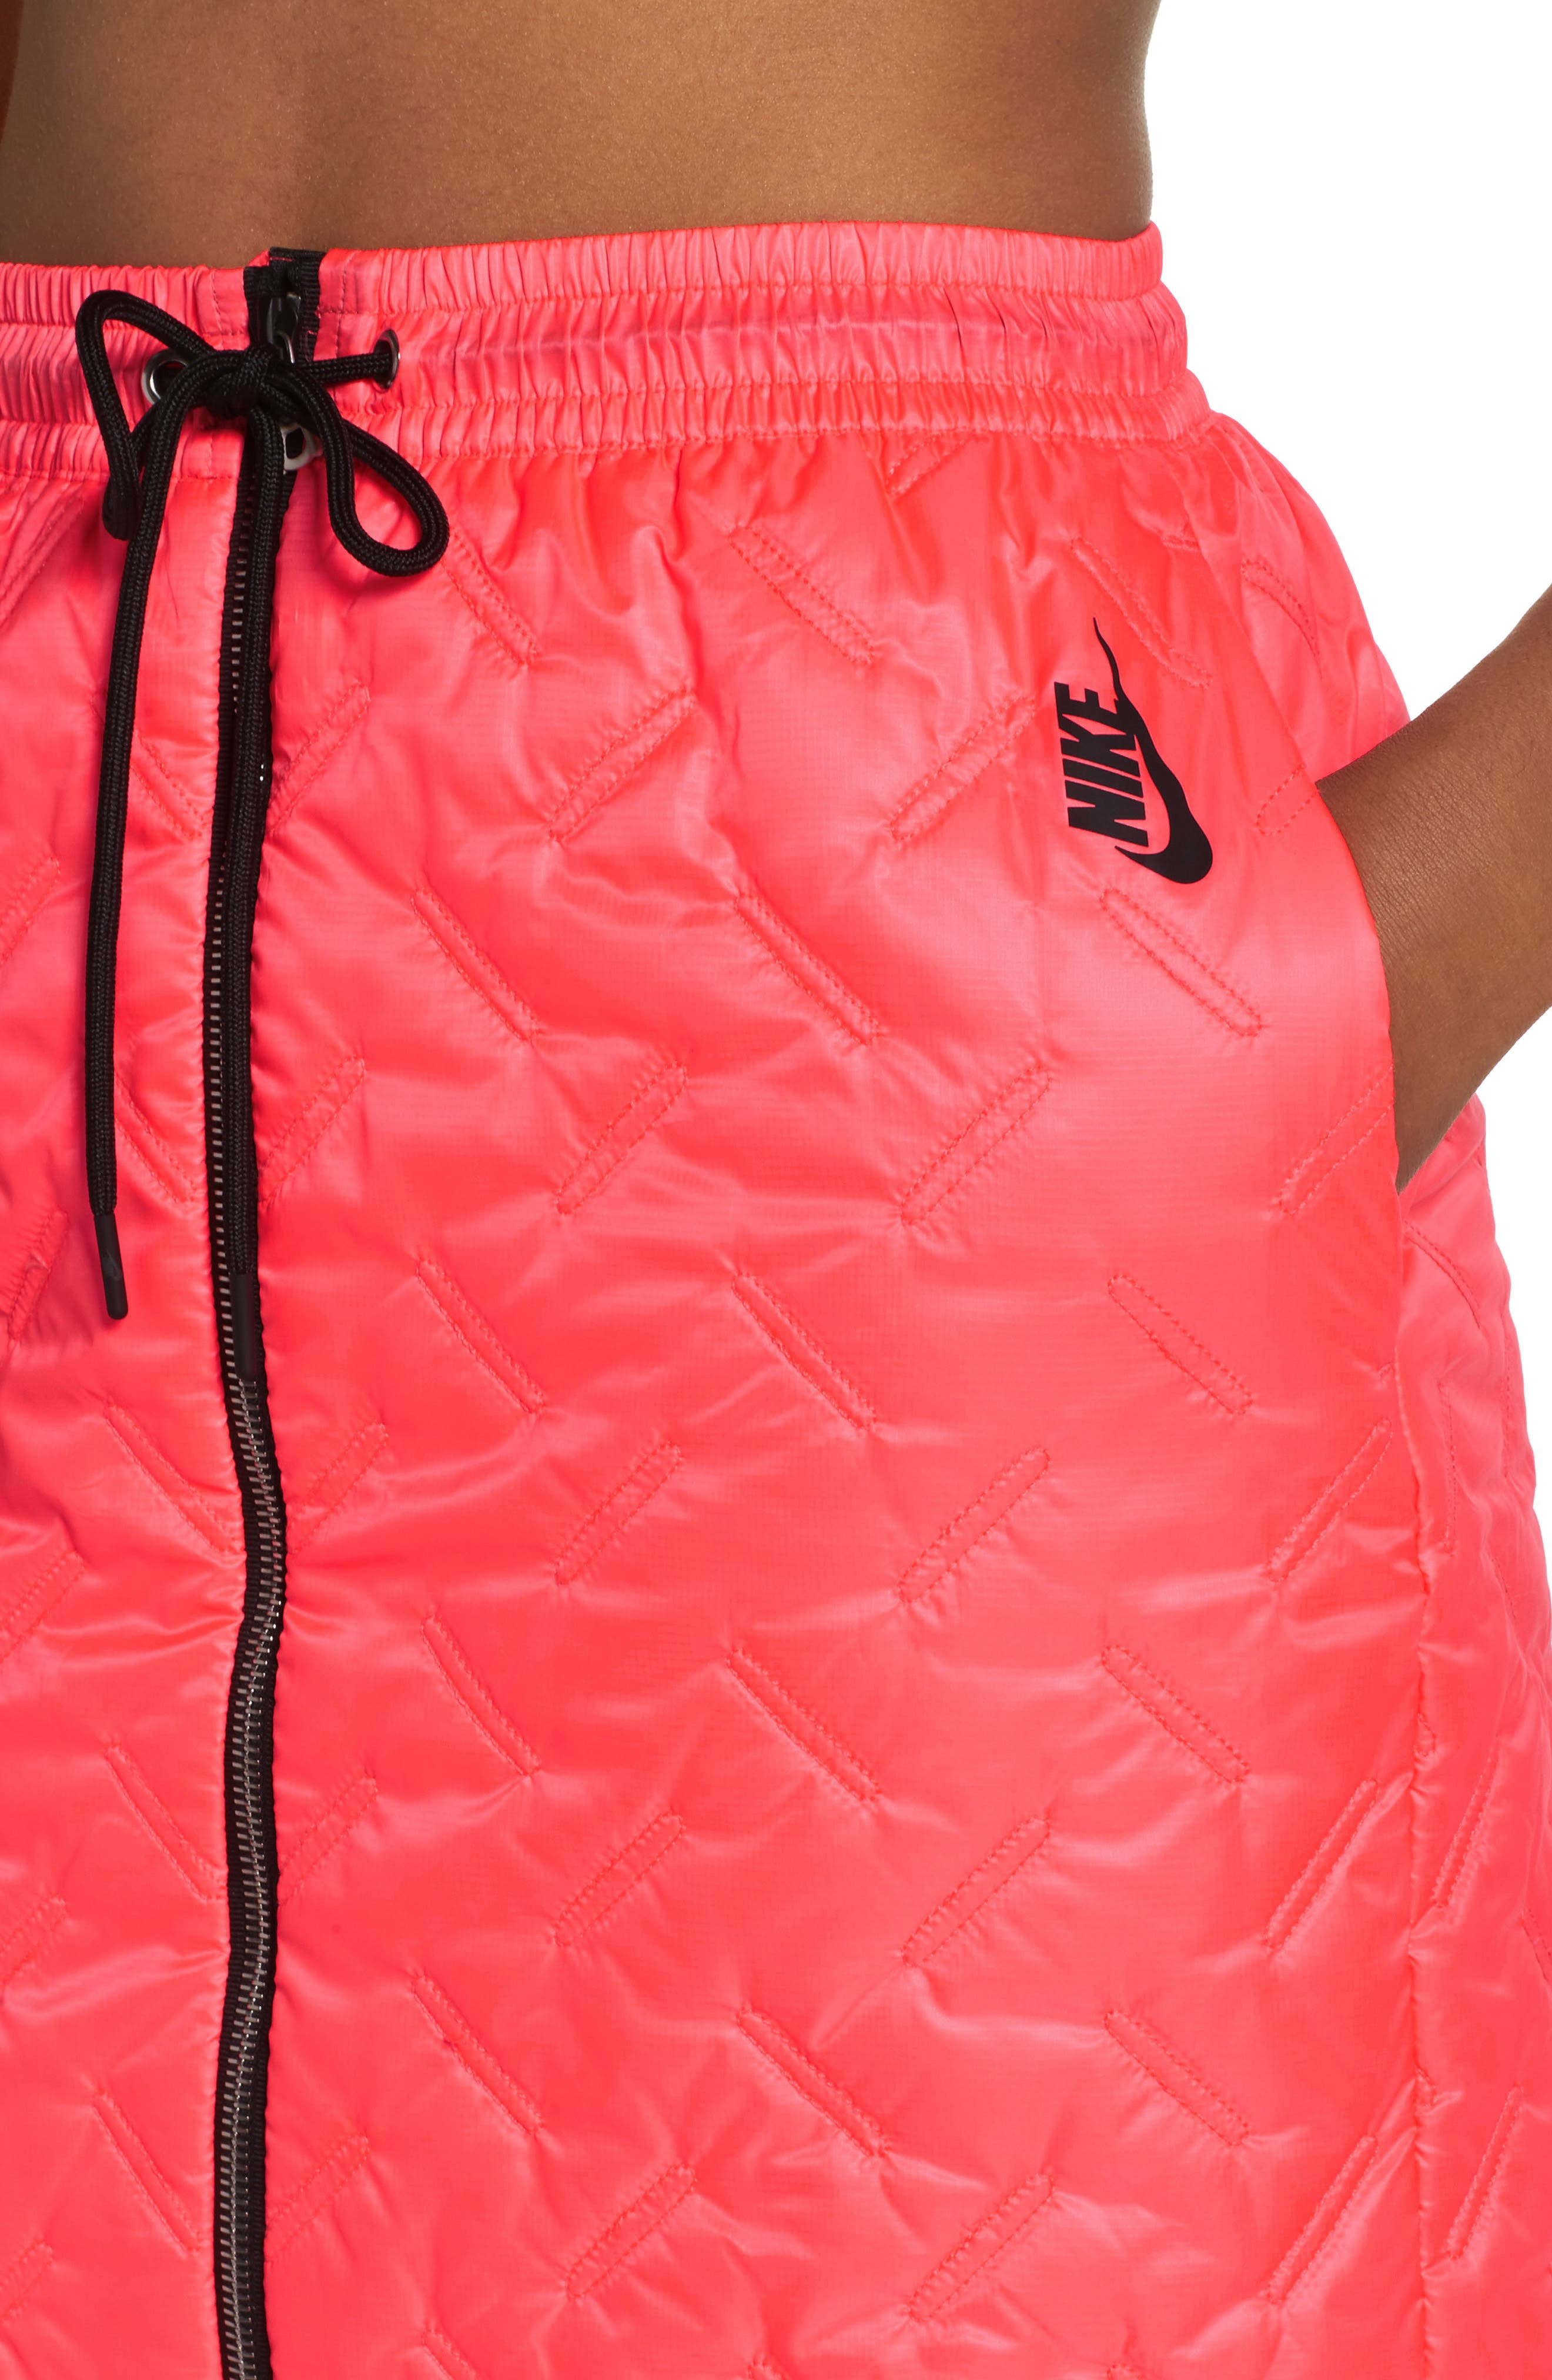 NikeLab Essentials Insulated Skirt,                             Alternate thumbnail 6, color,                             Hot Punch/ Black